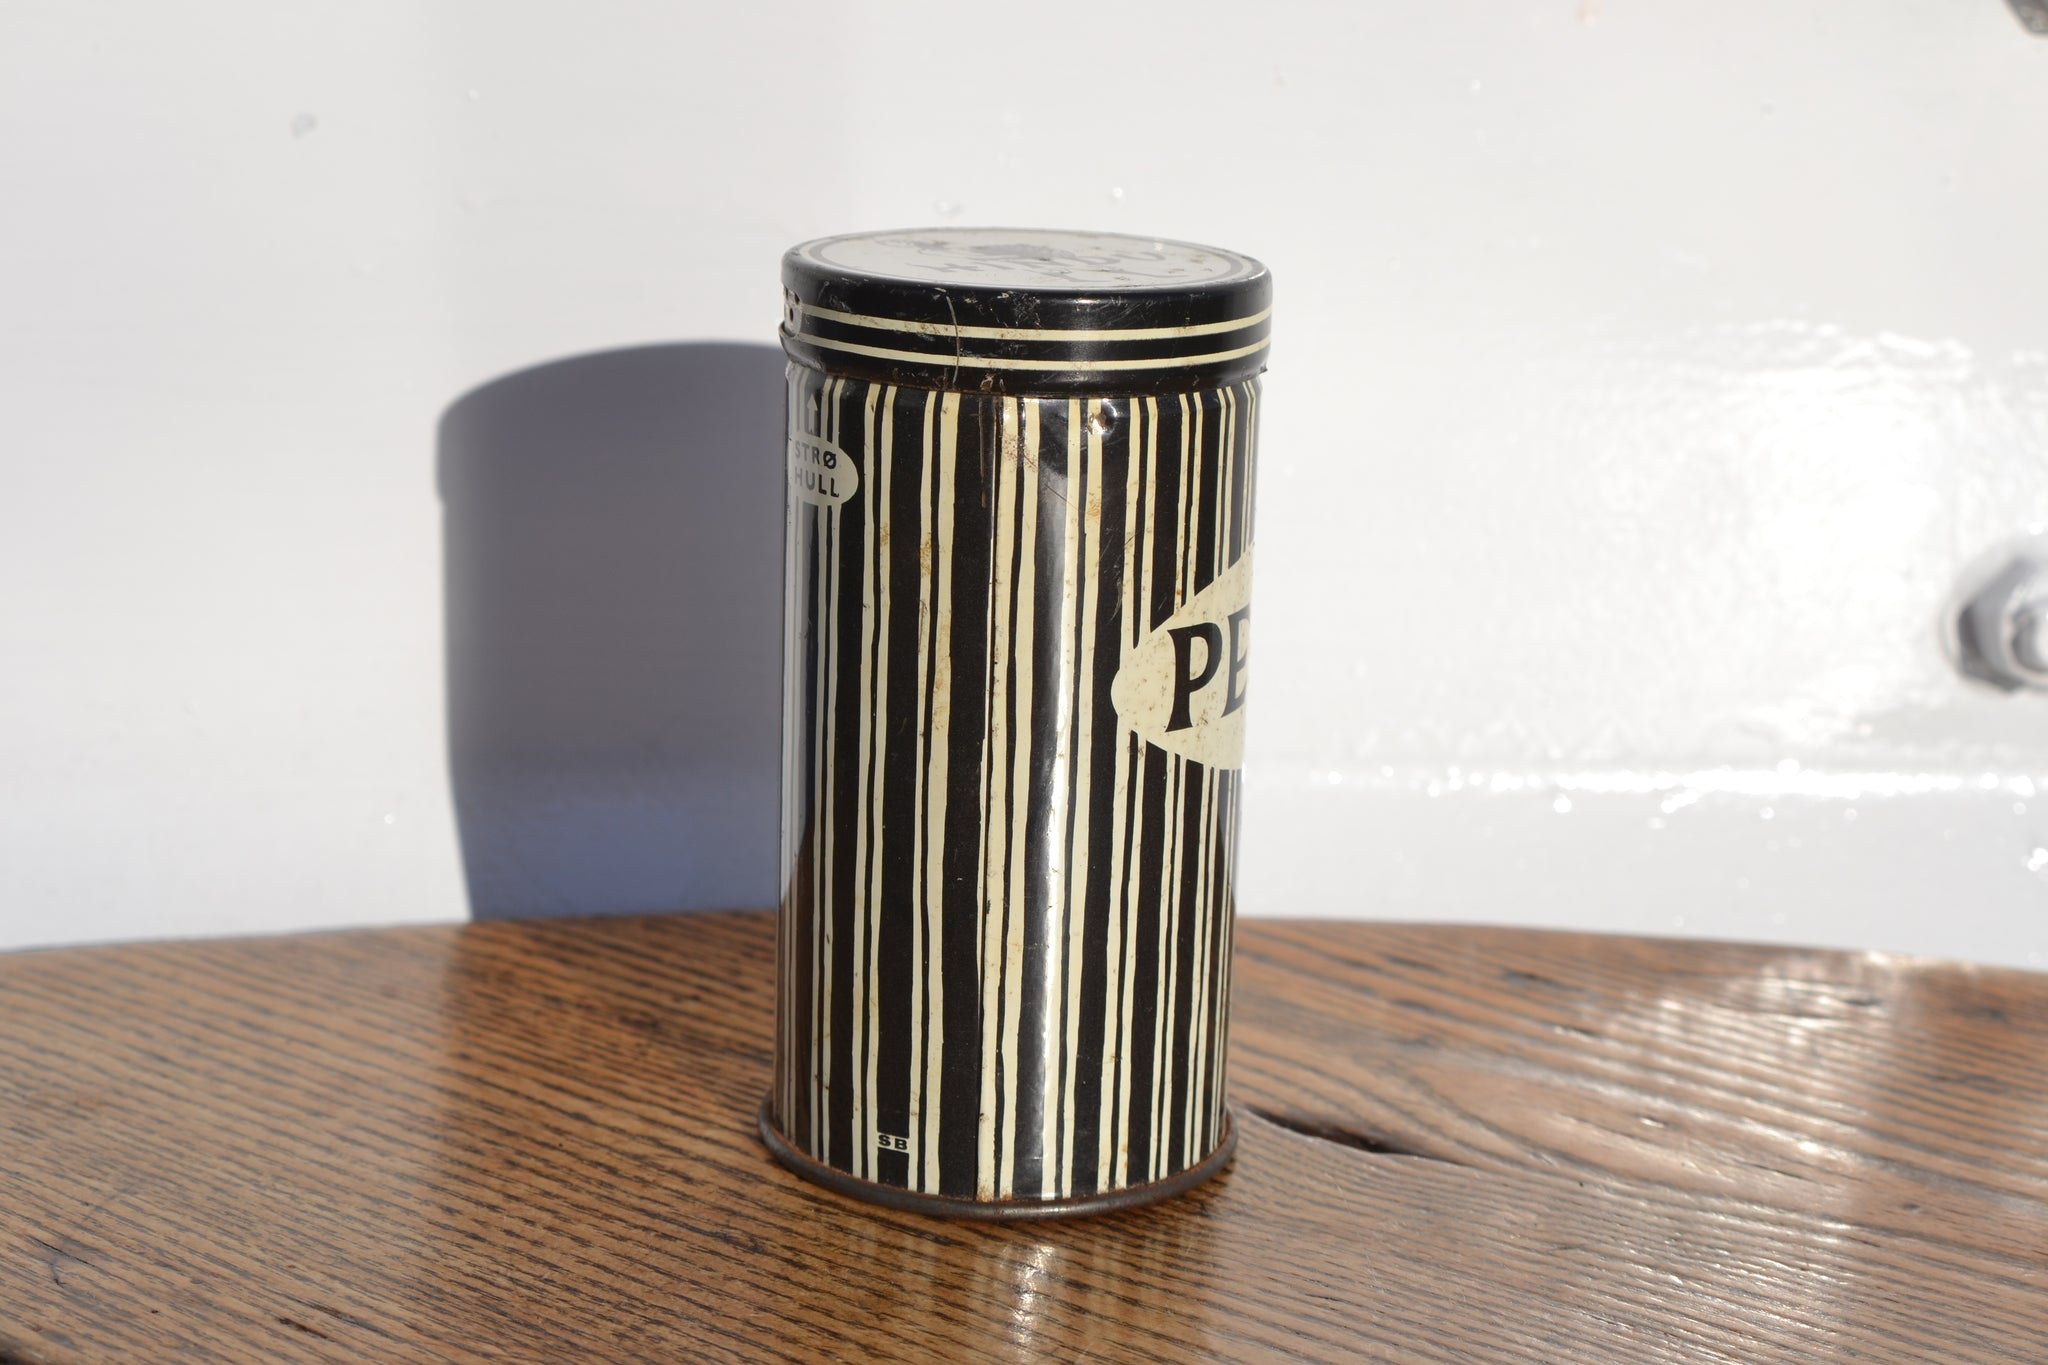 A Norwegian Hindu Pepper tin shaker